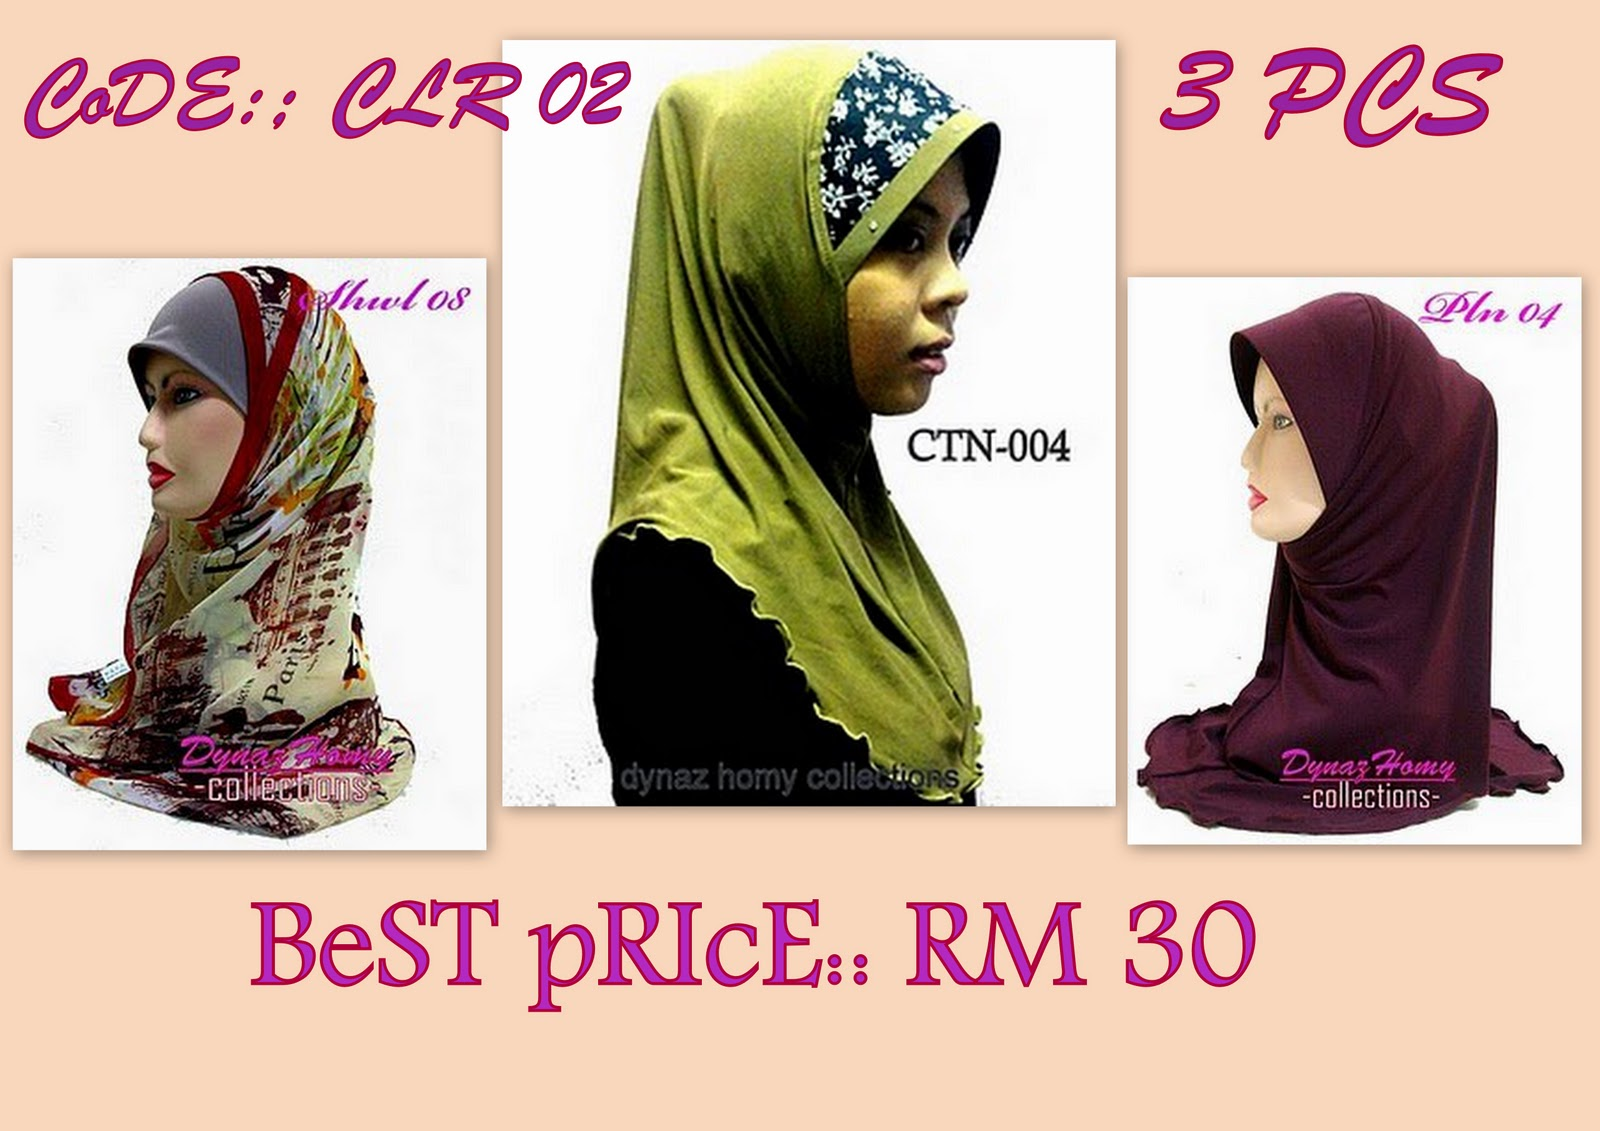 CLEARANCE STOCK!!!!! GRAB QUICKLY